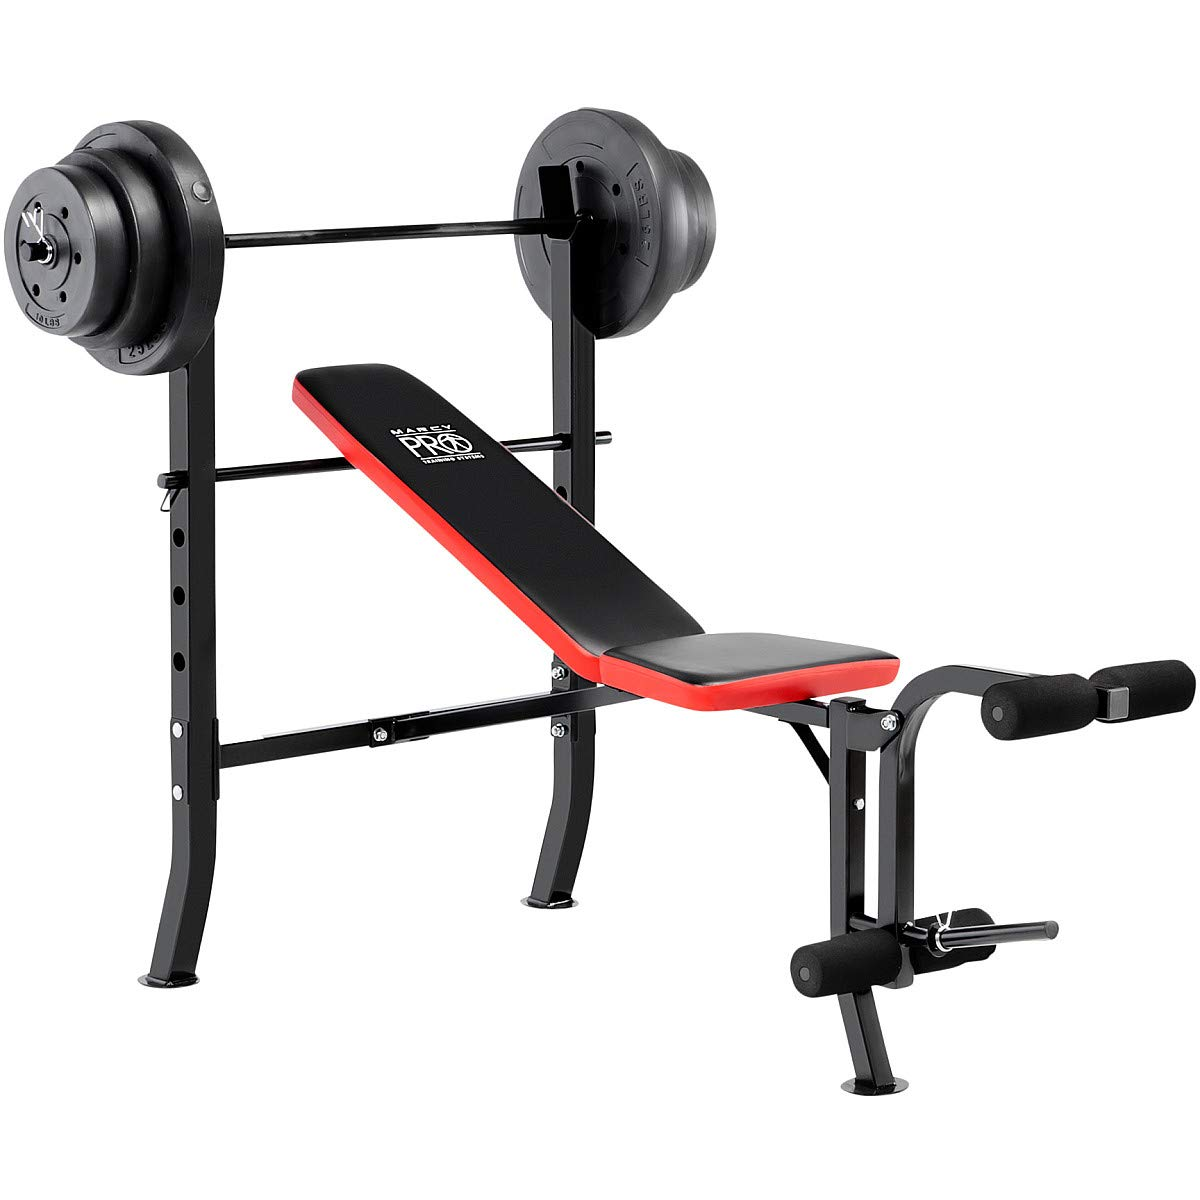 Marcy Standard Bench & 100 LB Weight Set